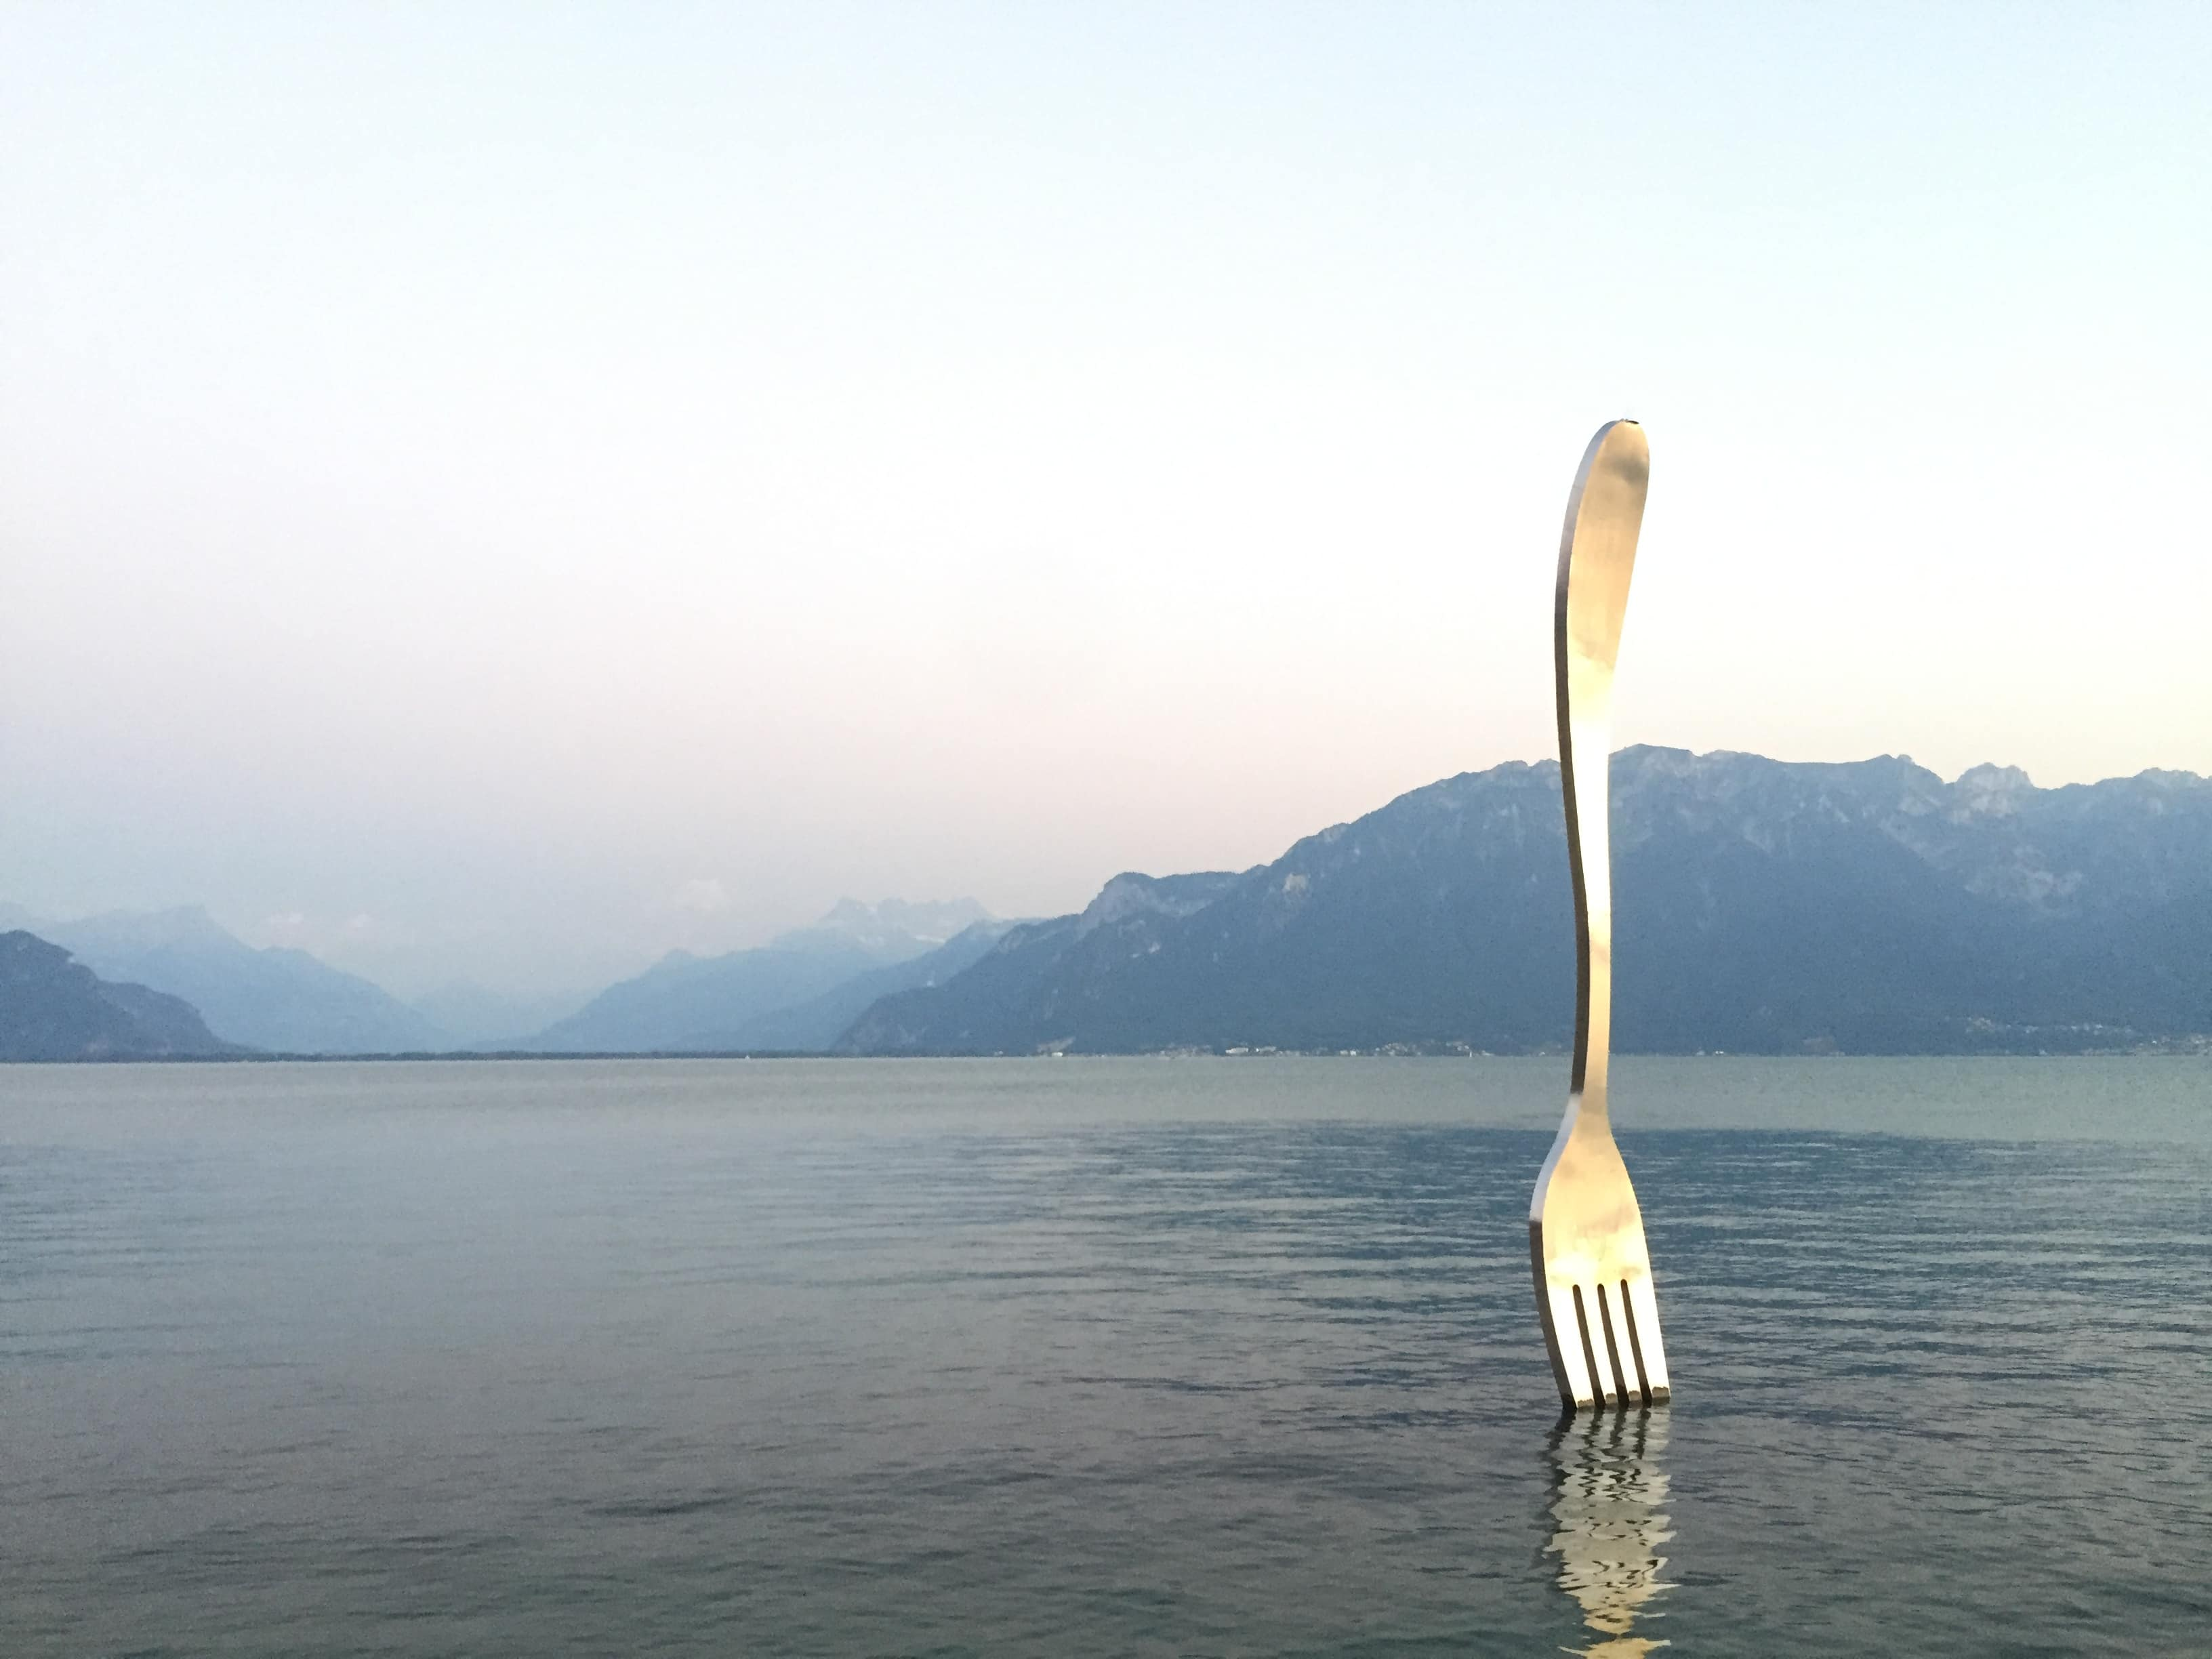 A massive fork in Vevey/Lac Leman